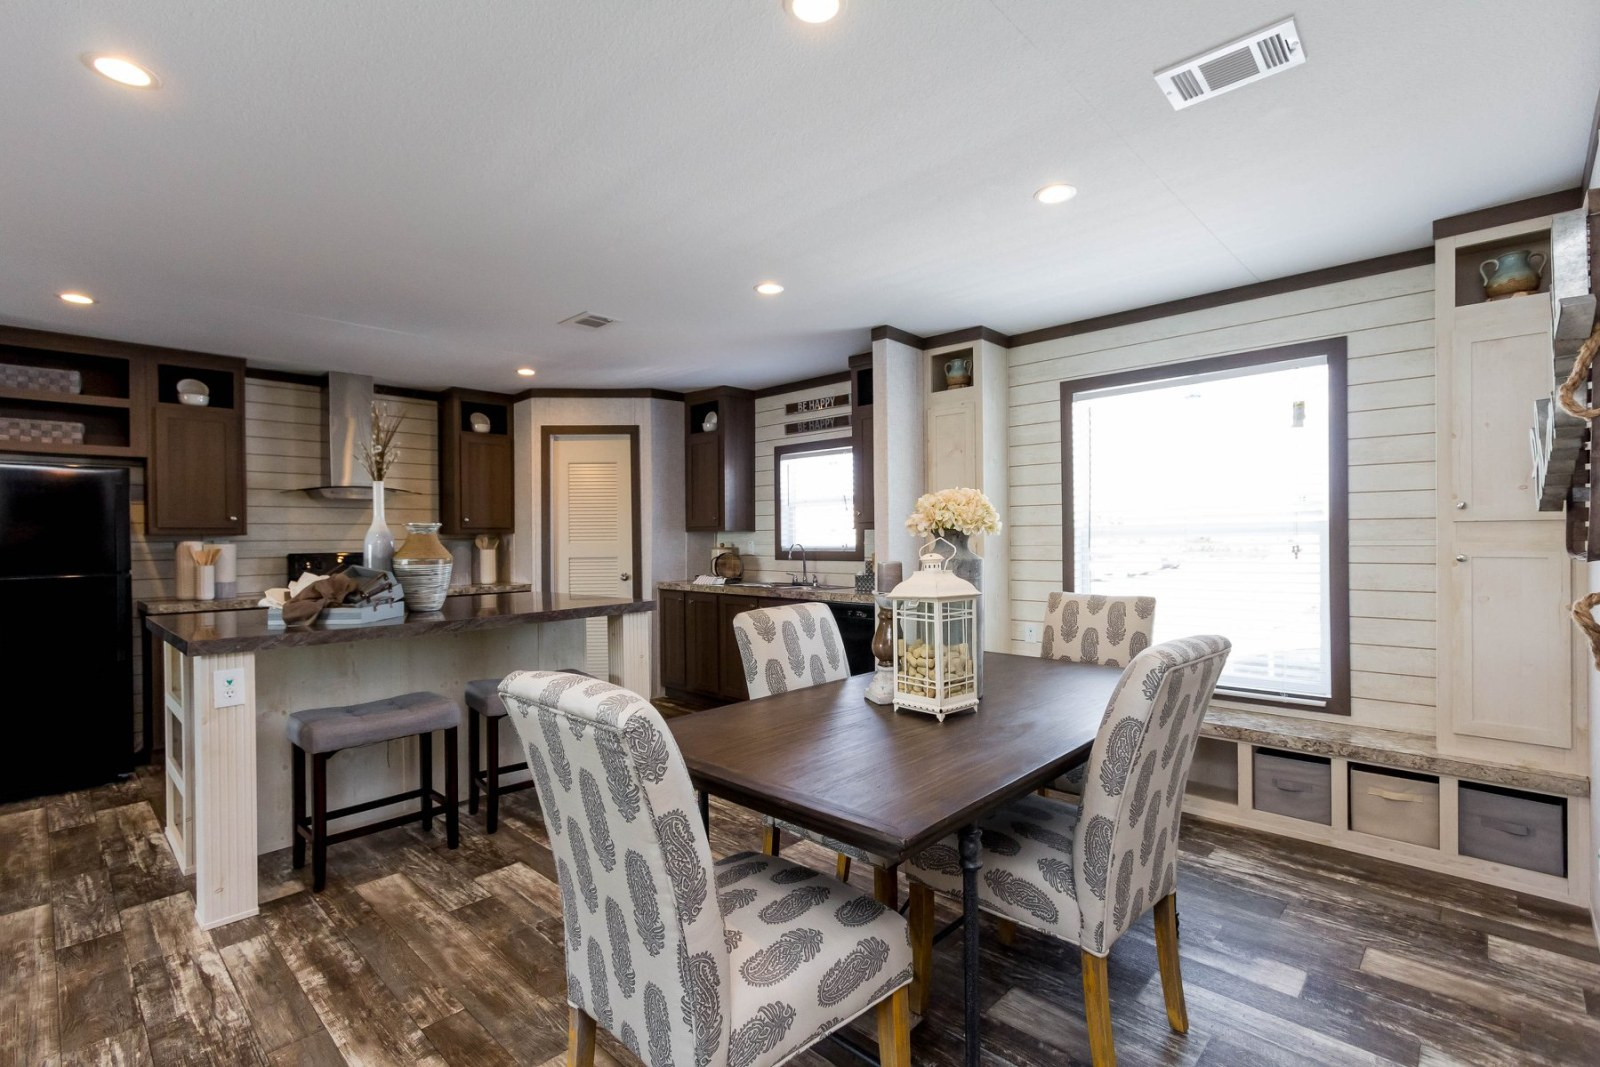 manufactured home retailer - titan factory direct - odessa, tx